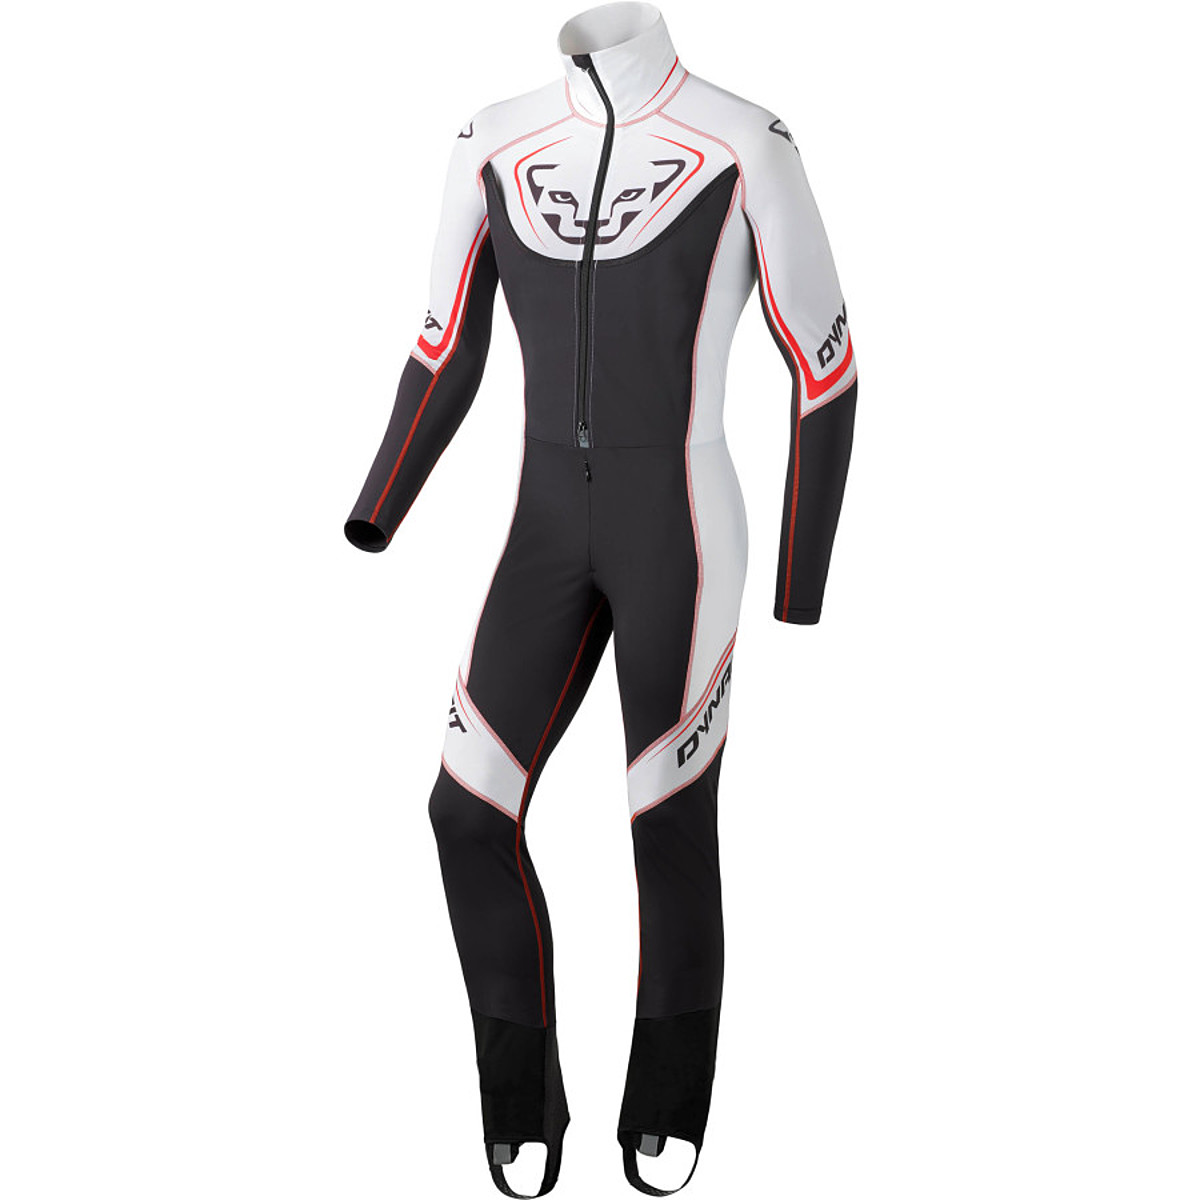 Dynafit Racing Suit DY.N.A